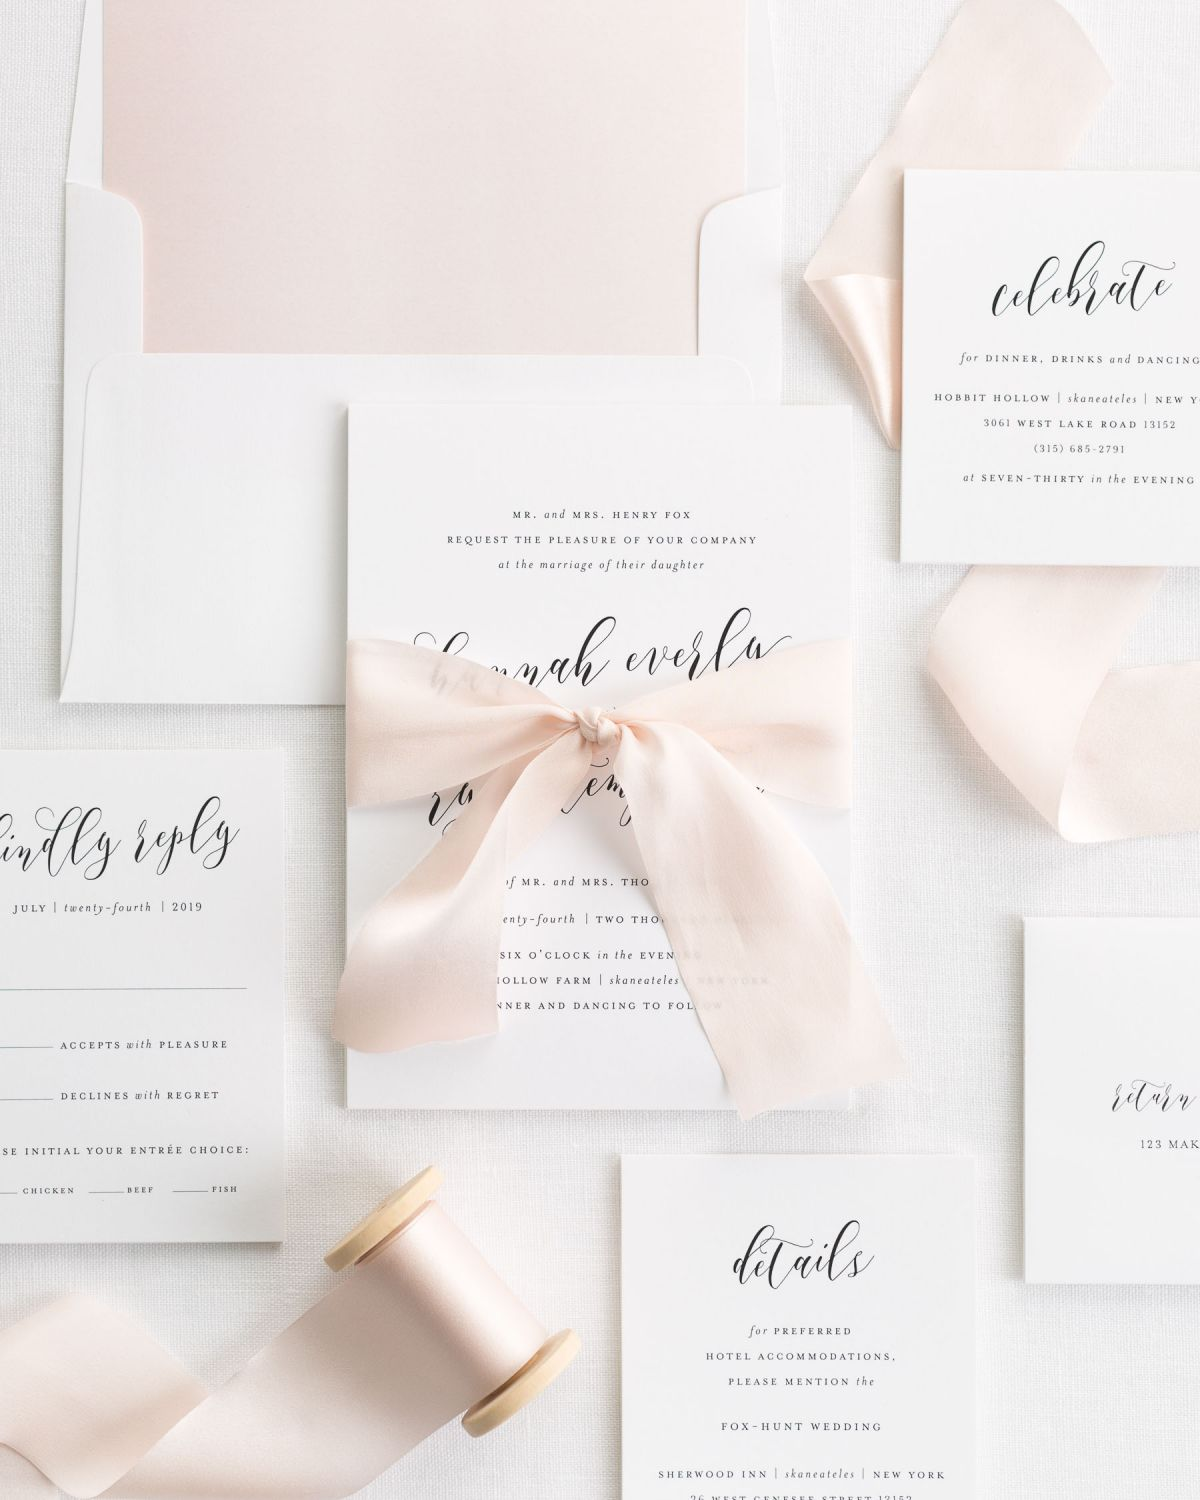 Complete Wedding Invitations Suite with Pale Pink Ribbon and Enclosures